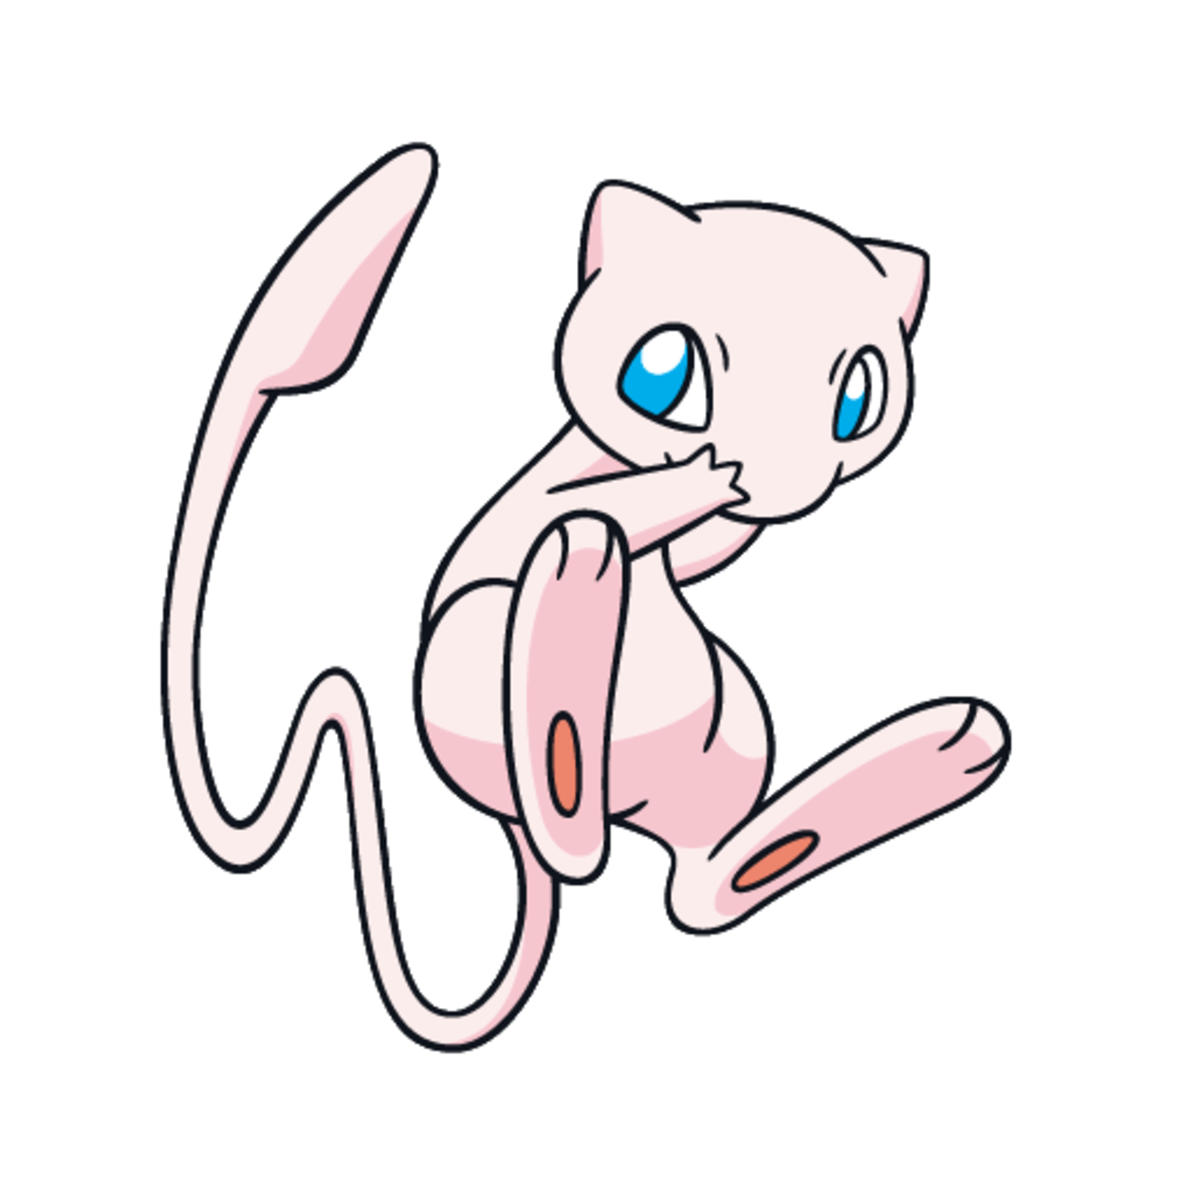 Mew, doing an evil cackle as it thinks of how difficult and time-consuming its quest is.